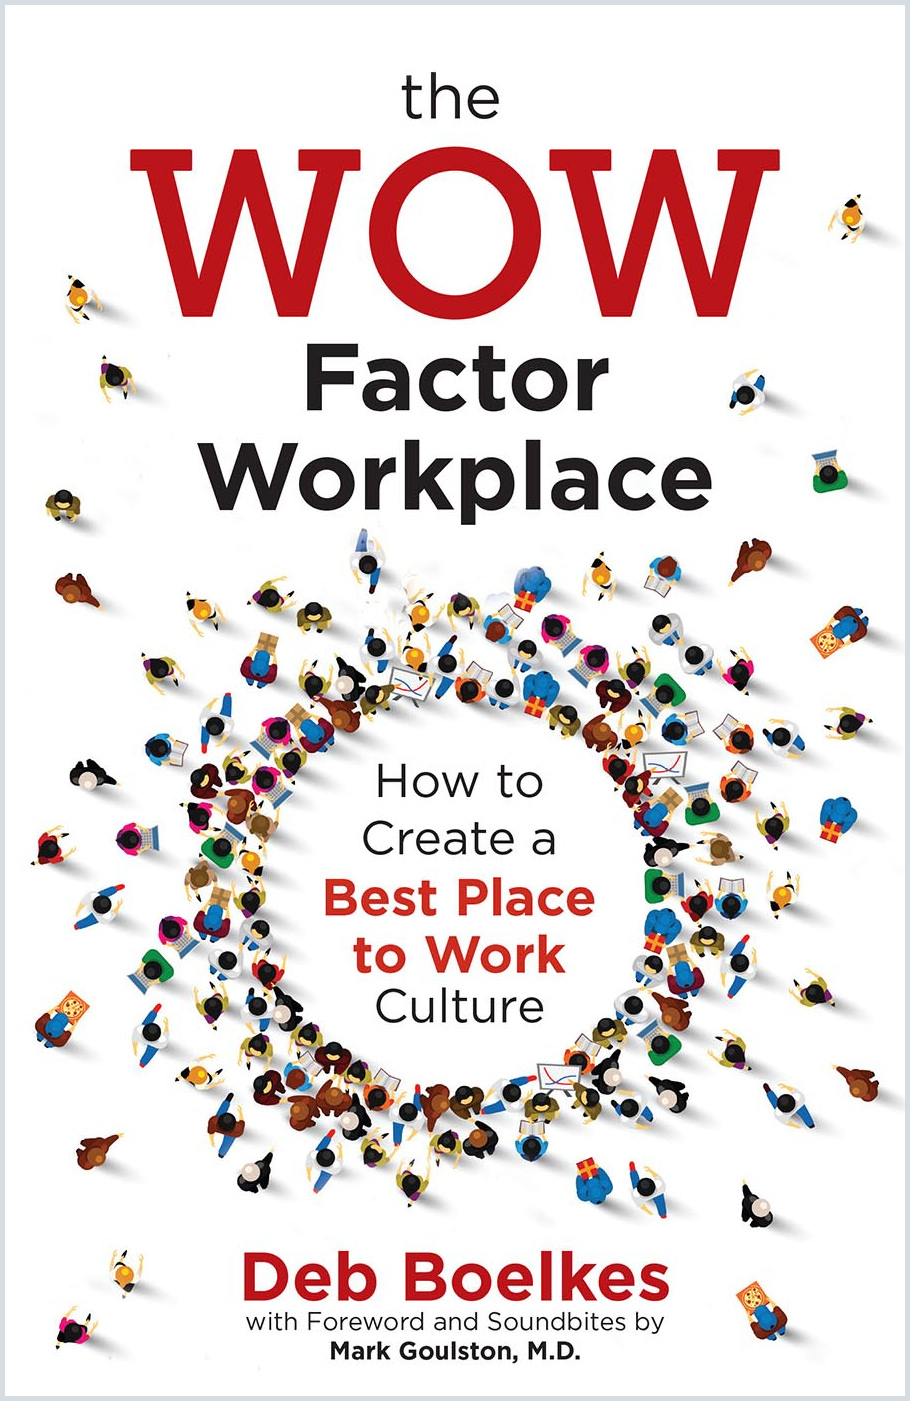 The WOW Factor Workplace book